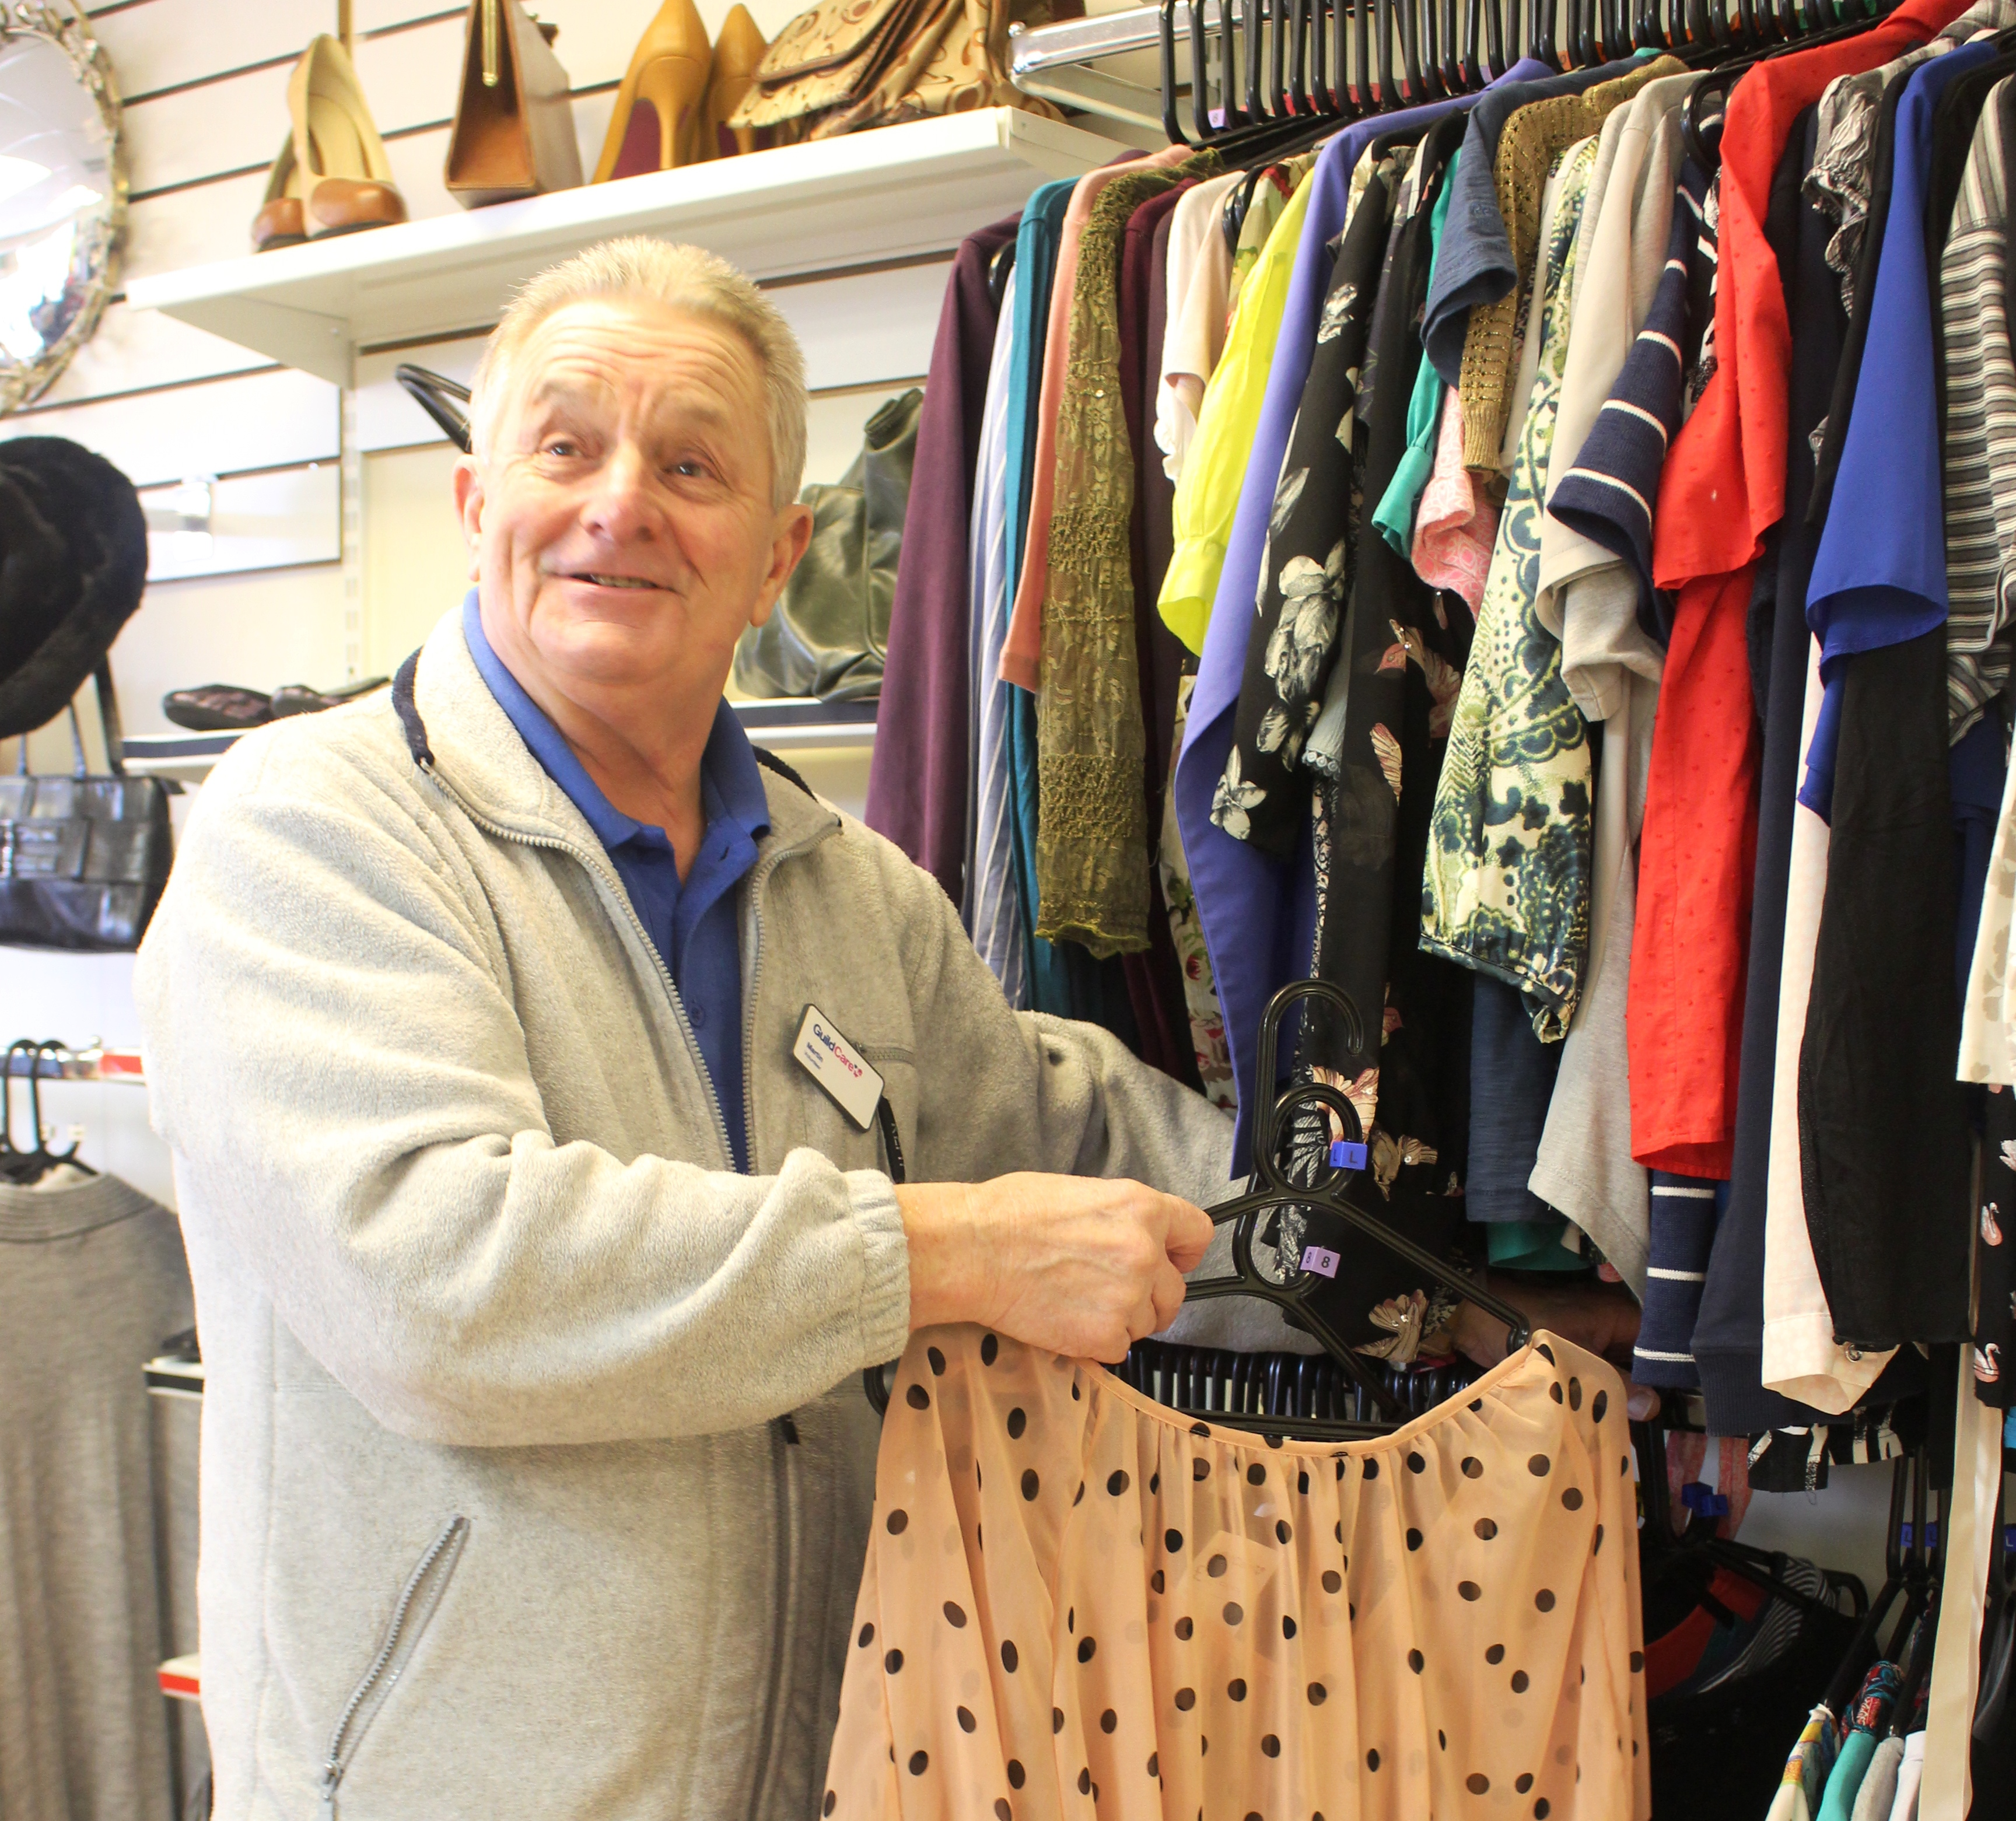 A volunteer hanging clothes in the Goring Road charity shop